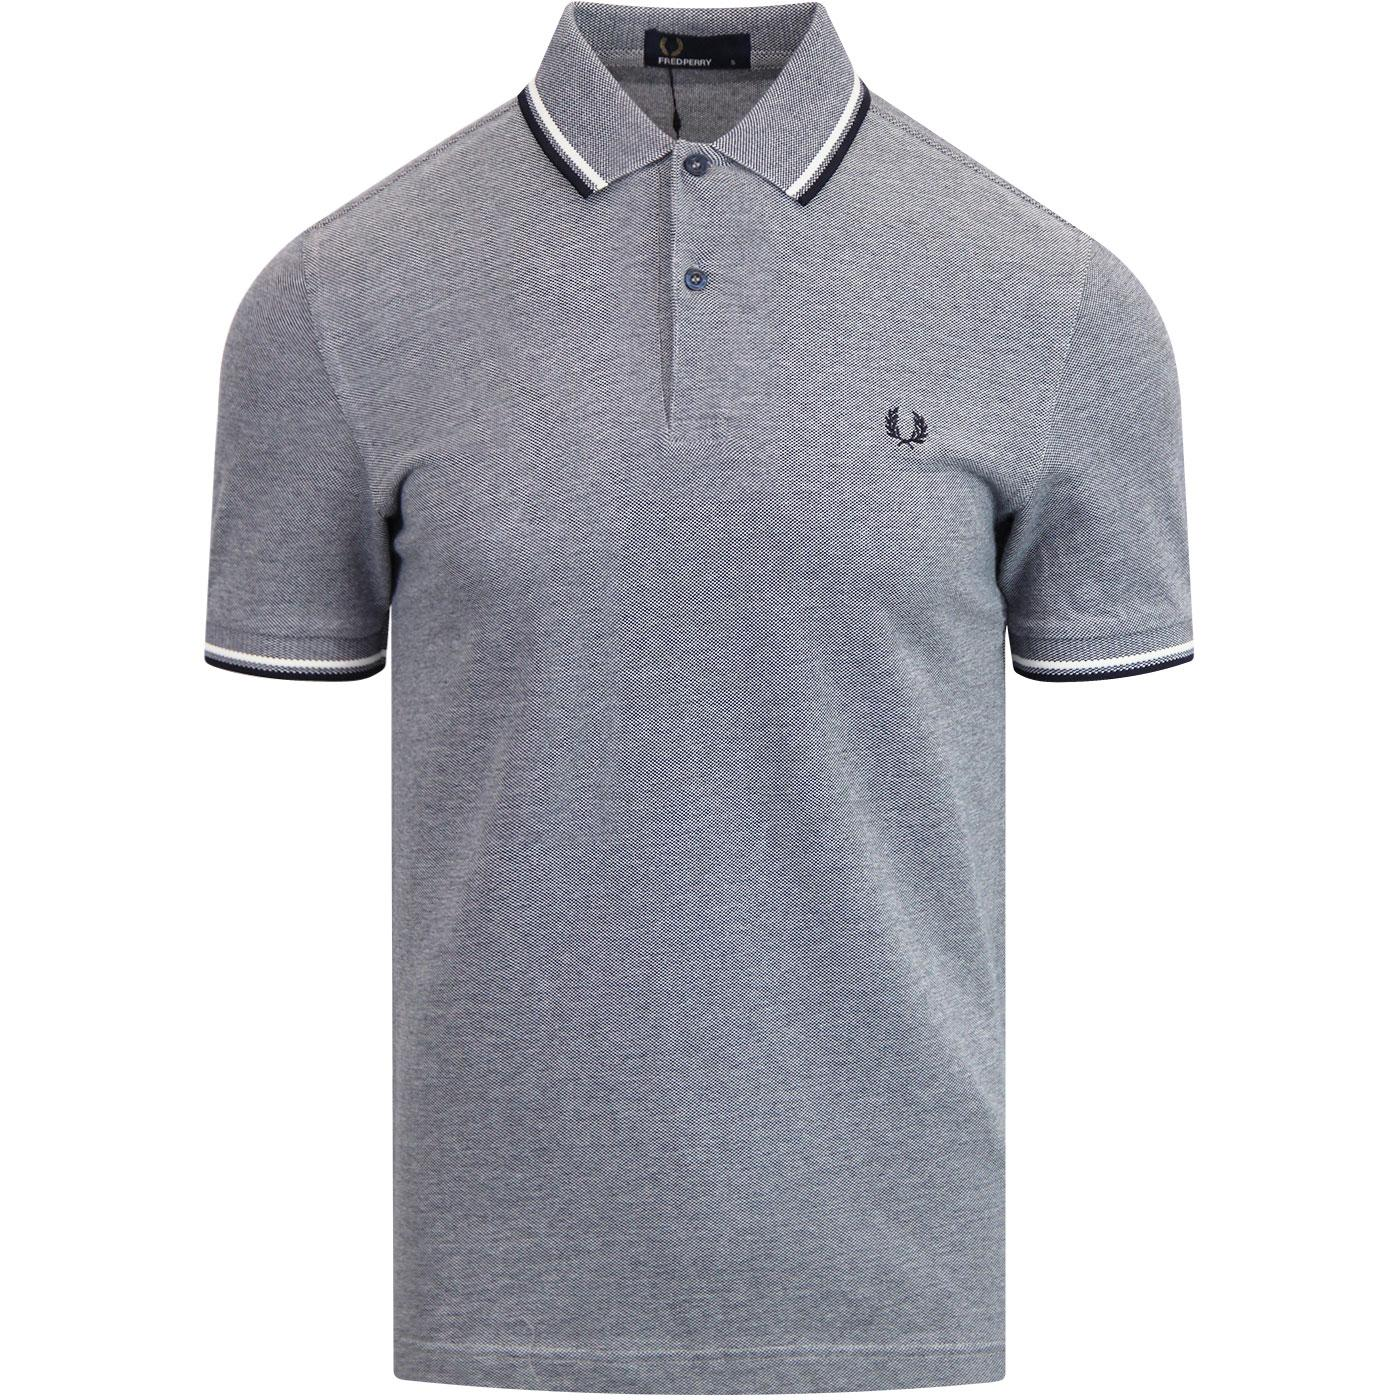 M3600 FRED PERRY Twin Tipped Mod Carbon Blue Polo